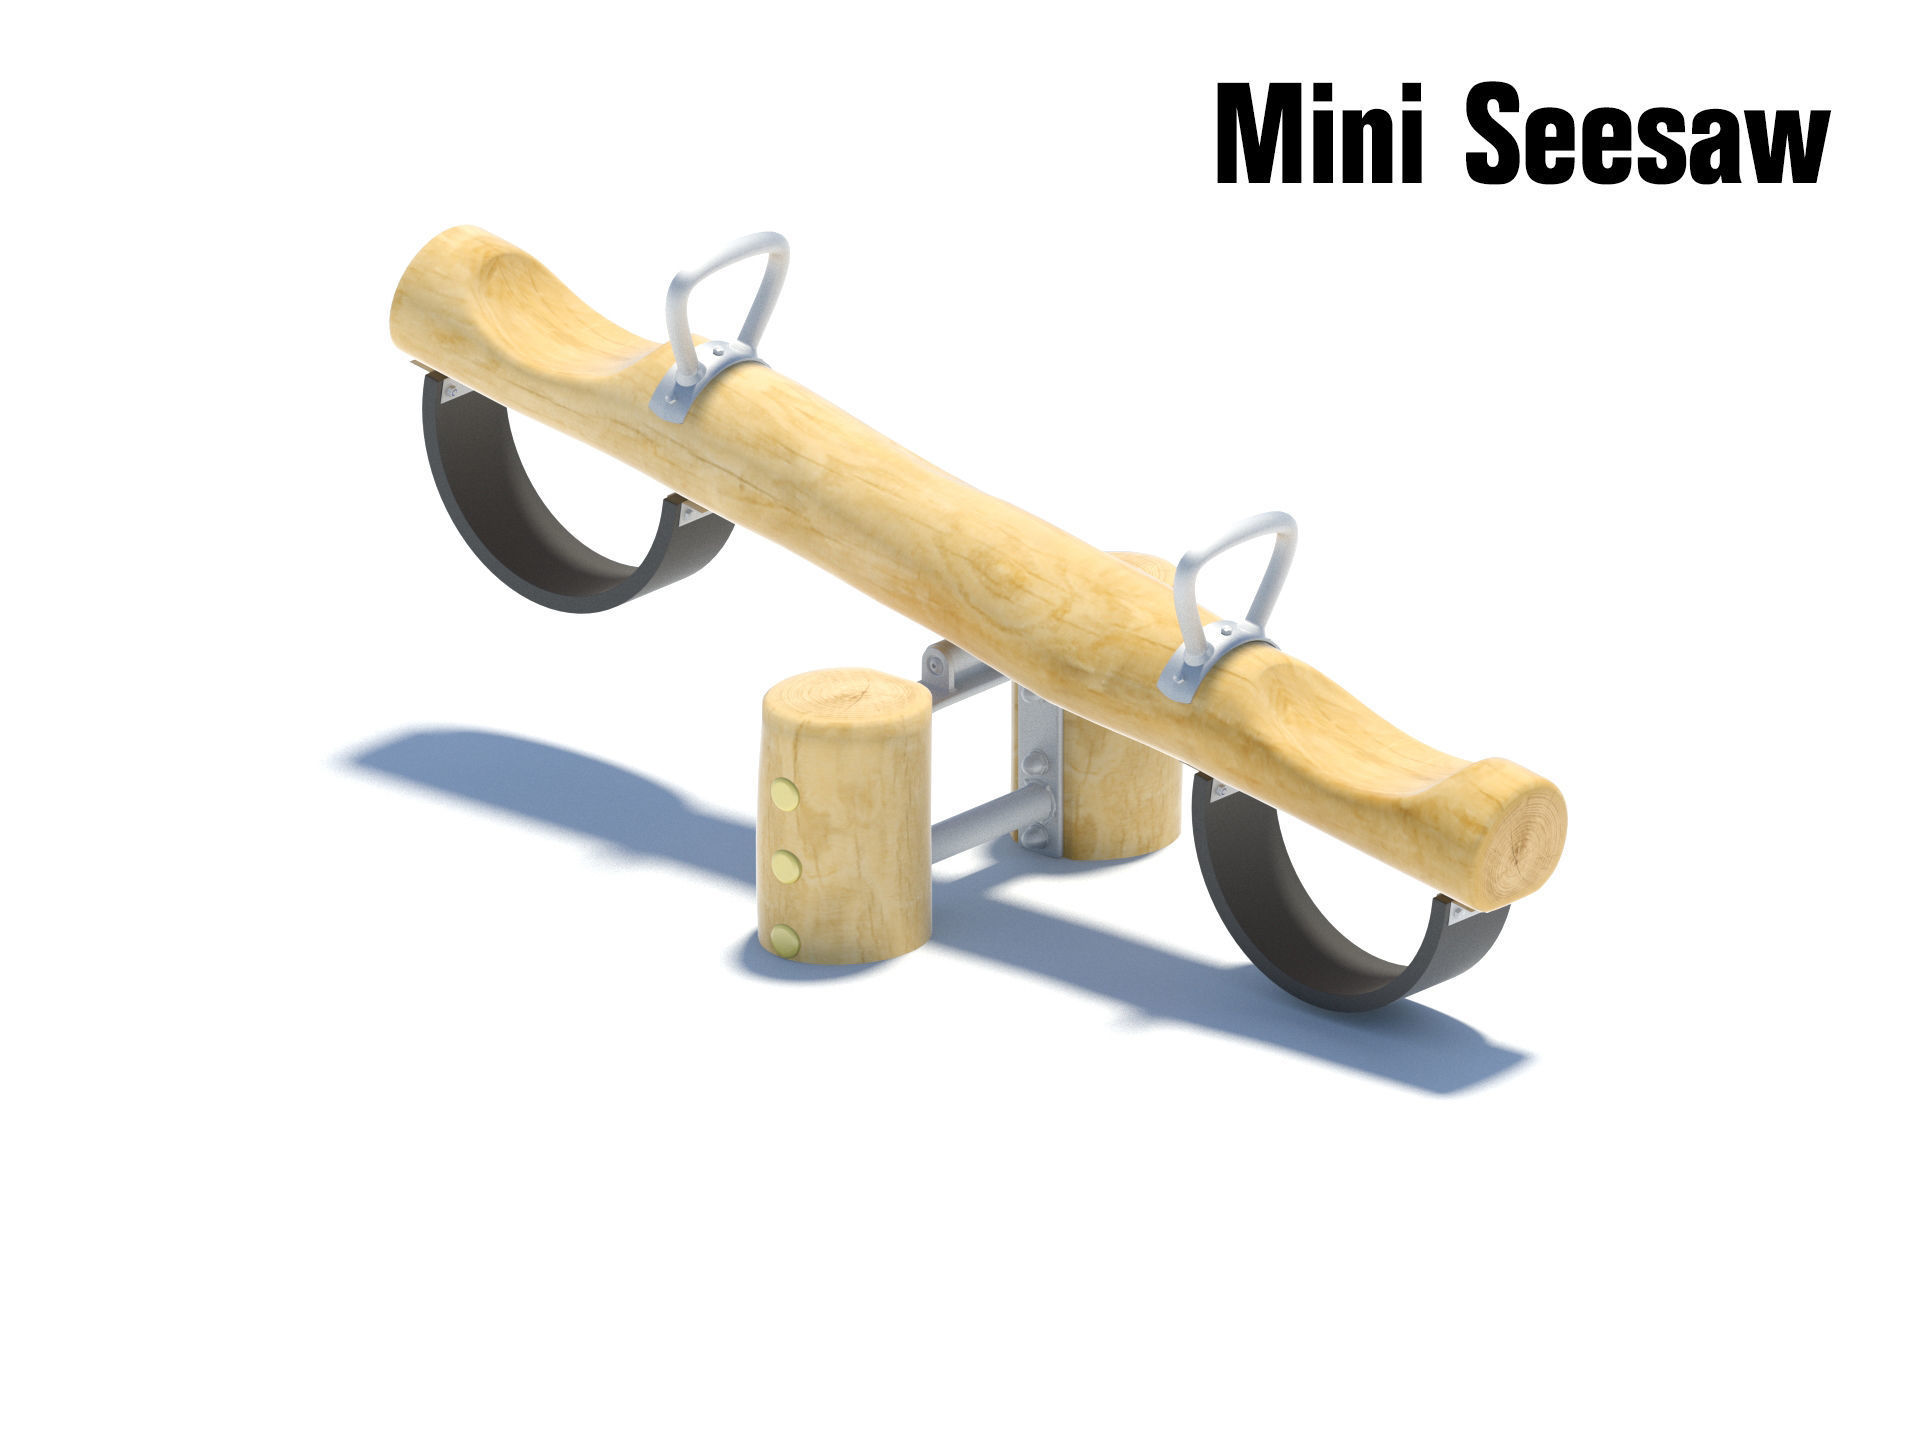 Wooden mini seesaw for small children